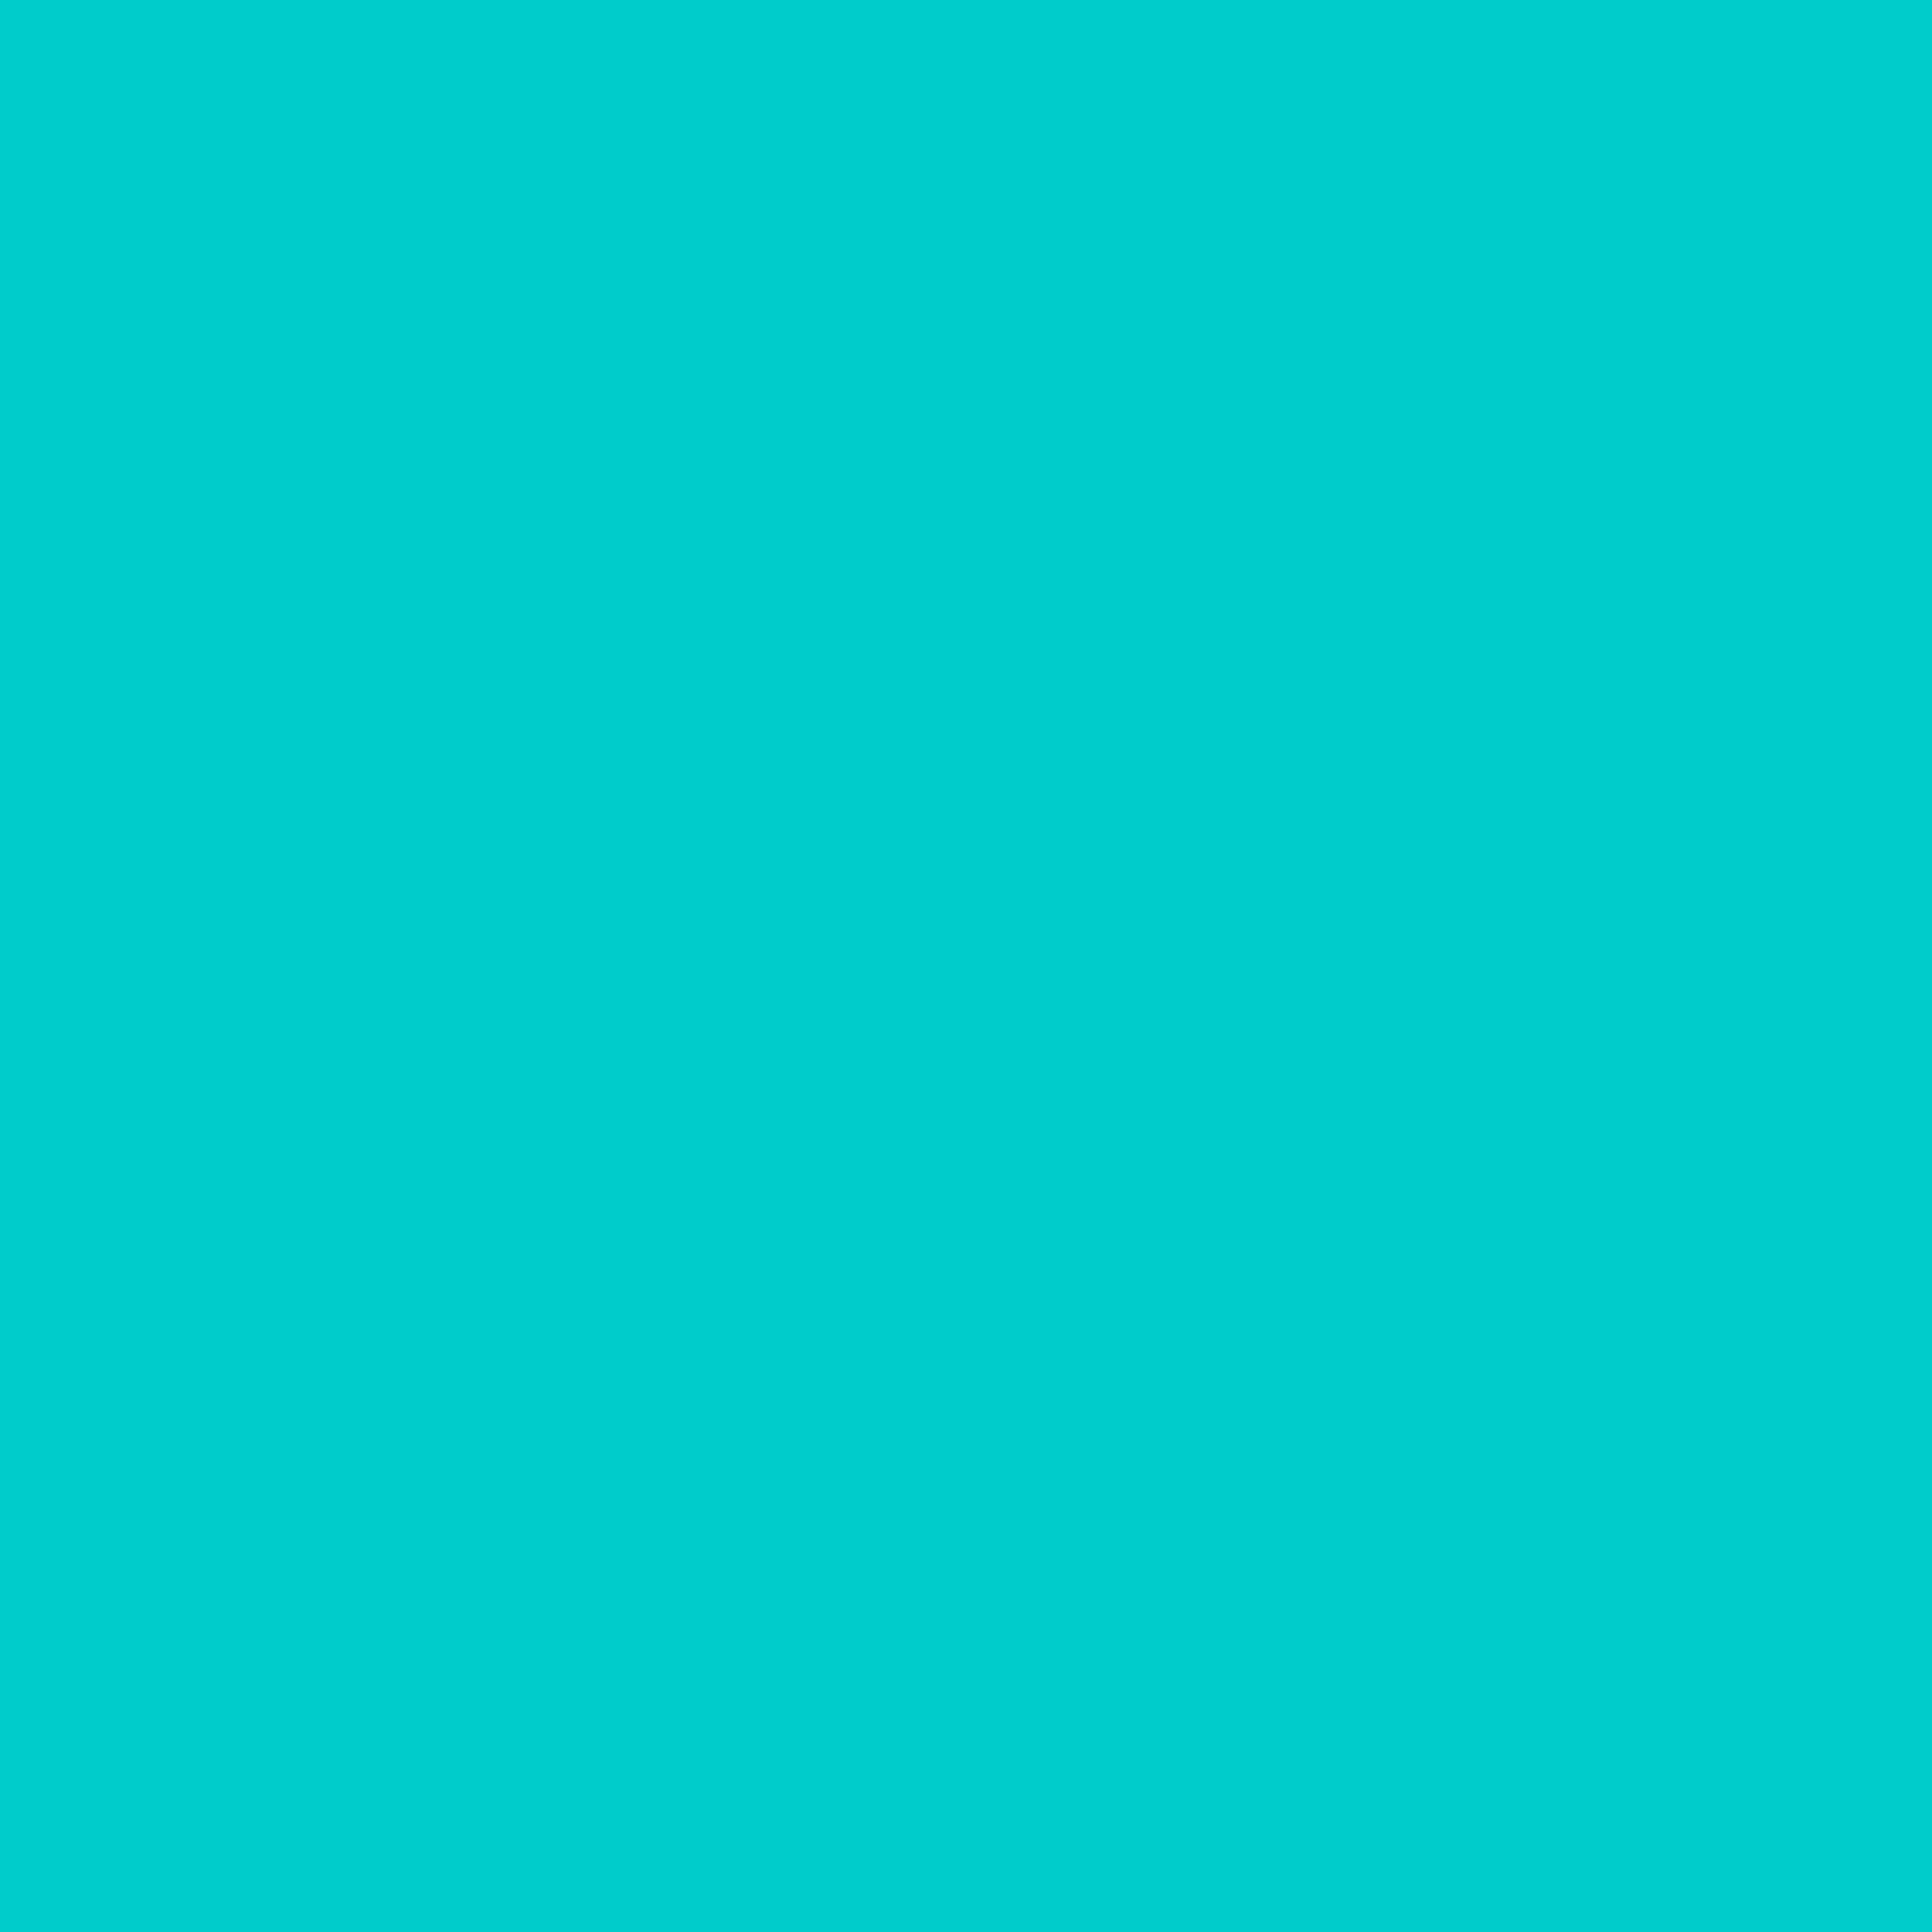 2048x2048 Robin Egg Blue Solid Color Background